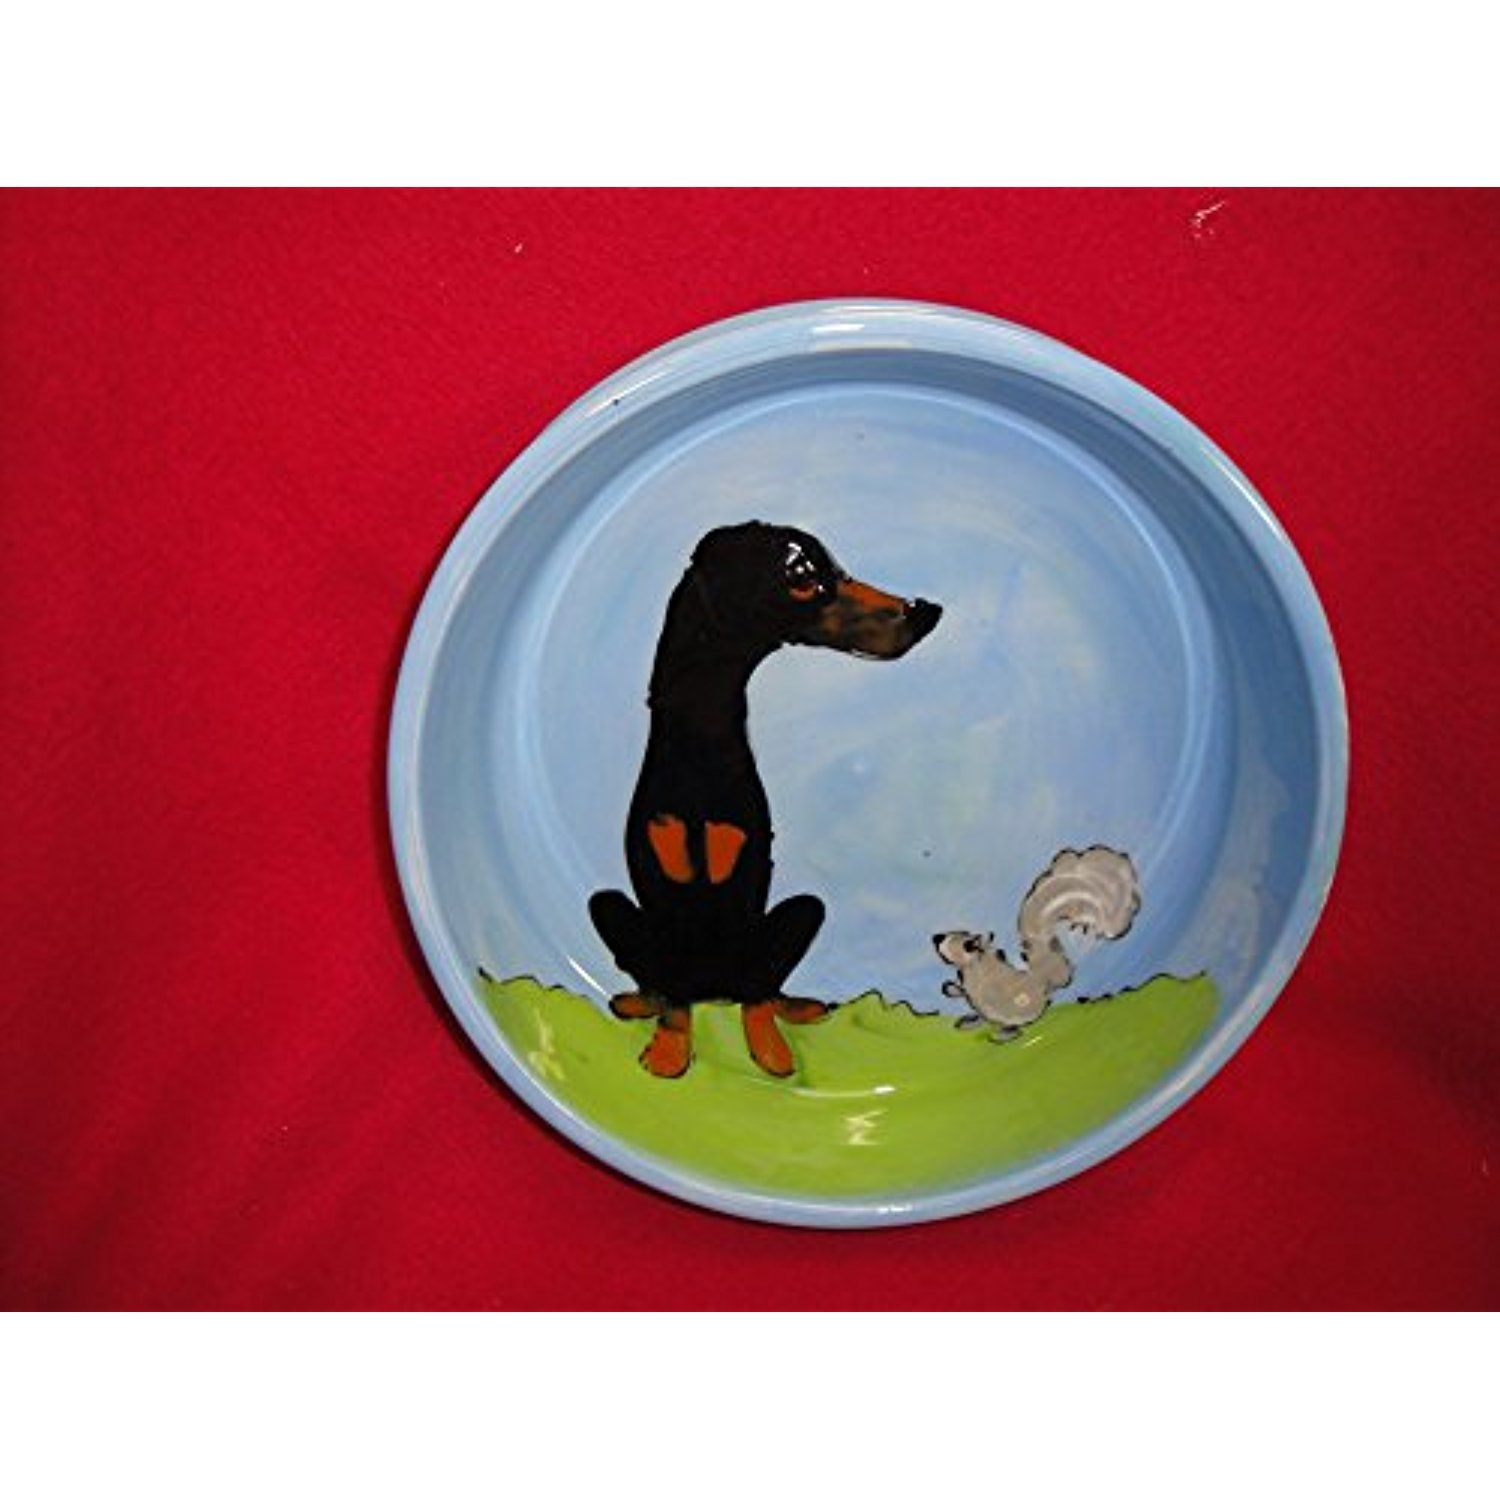 Doberman Pinscher 10 Dog Bowl For Food Or Water Personalized At